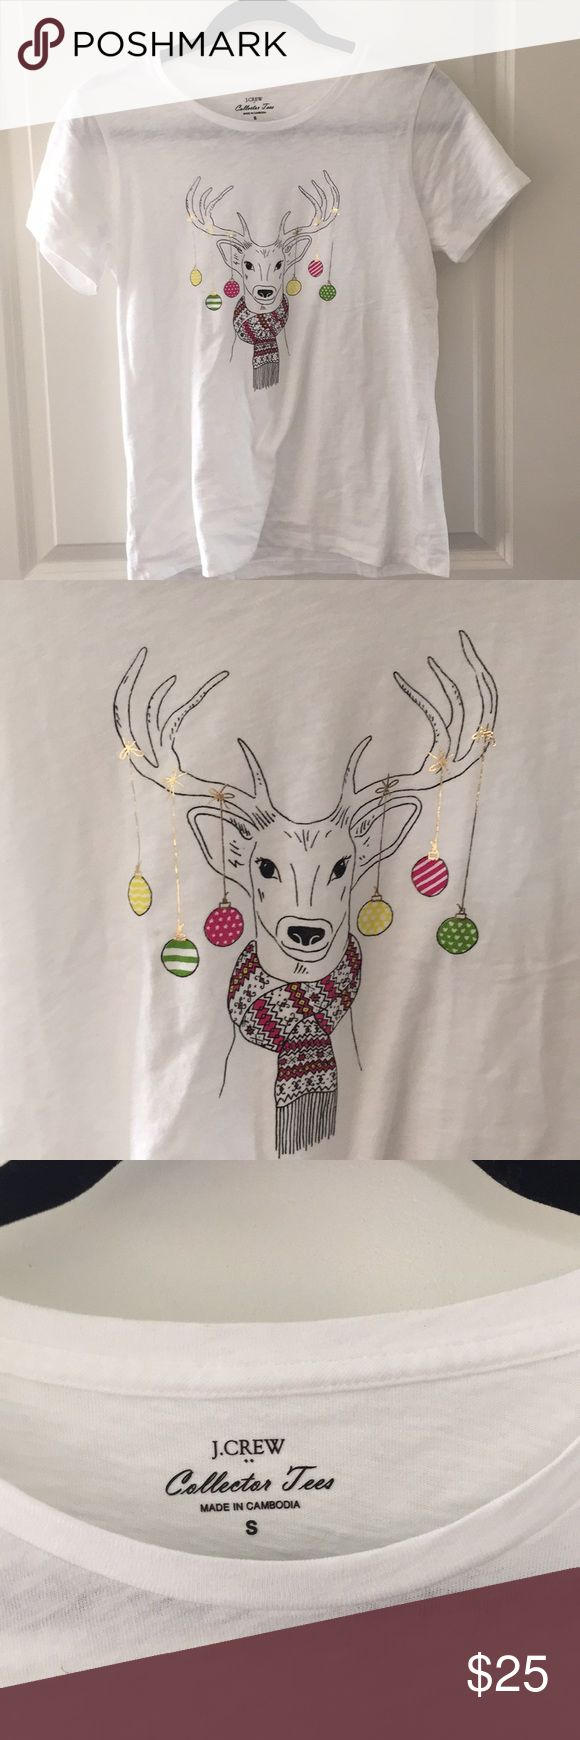 NWOT J.Crew Reindeer and ornaments t-shirt, S NWOT J.Crew white tee shirt with an adorable Reindeer in a scarf with ornaments hanging from his antlers on shiny gold strings. From the J.Crew Collection Tees department. Size small. 100% cotton. Love this shirt but I meant to buy a XS and only realized it was a small after I put it on. Never wore it aside from putting it on for 10 seconds. Super fun for the holidays! J. Crew Tops Tees - Short Sleeve